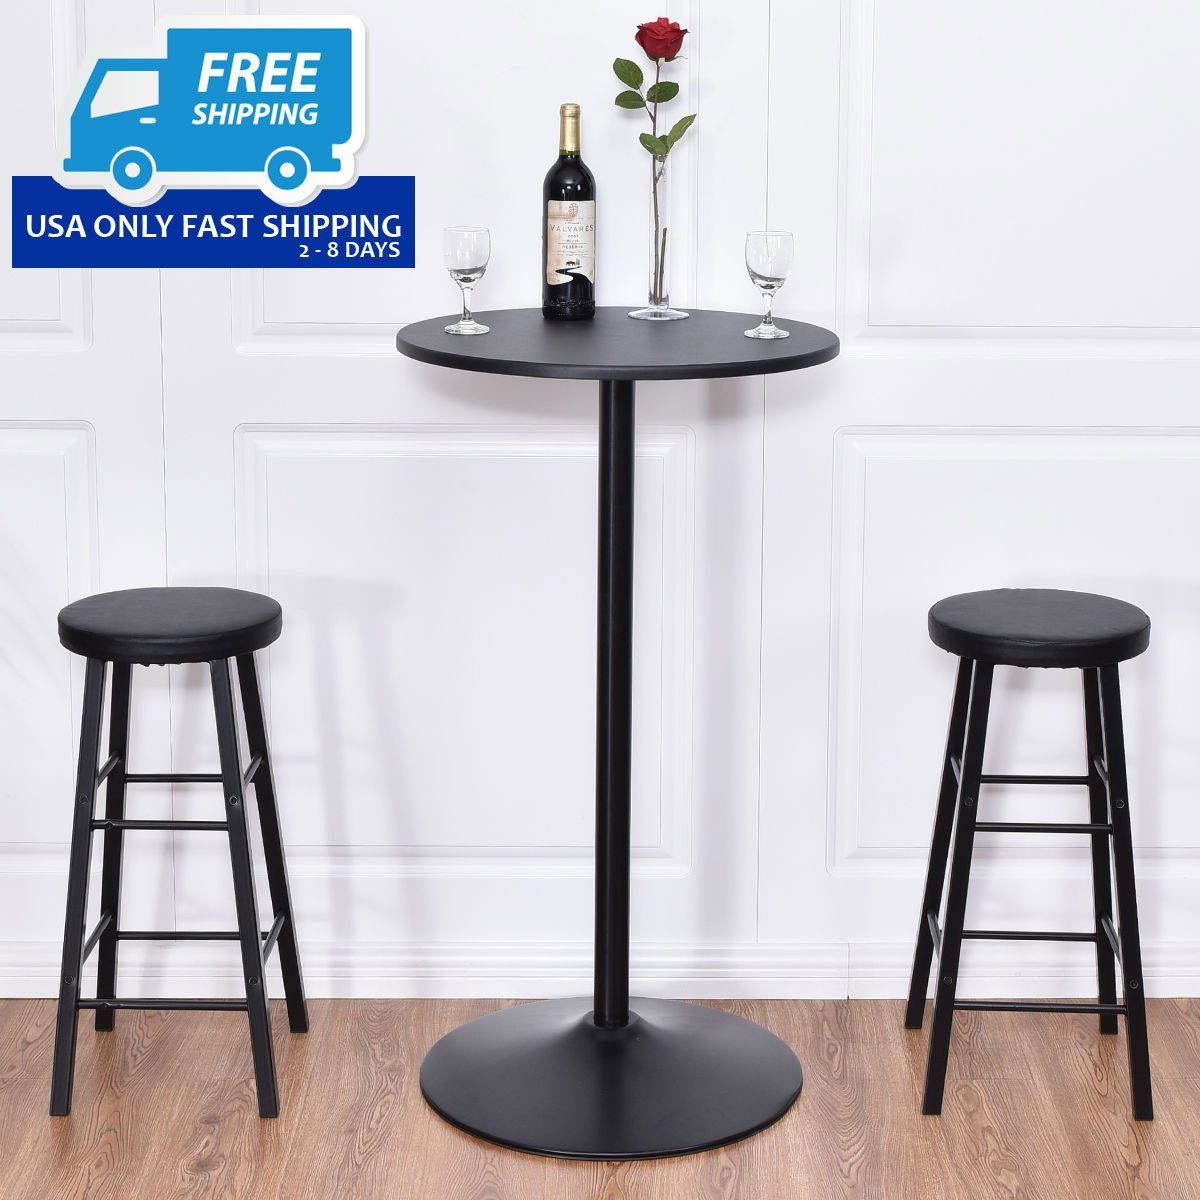 Bistro Bar Table Choice Image Bar Height Dining Table Set